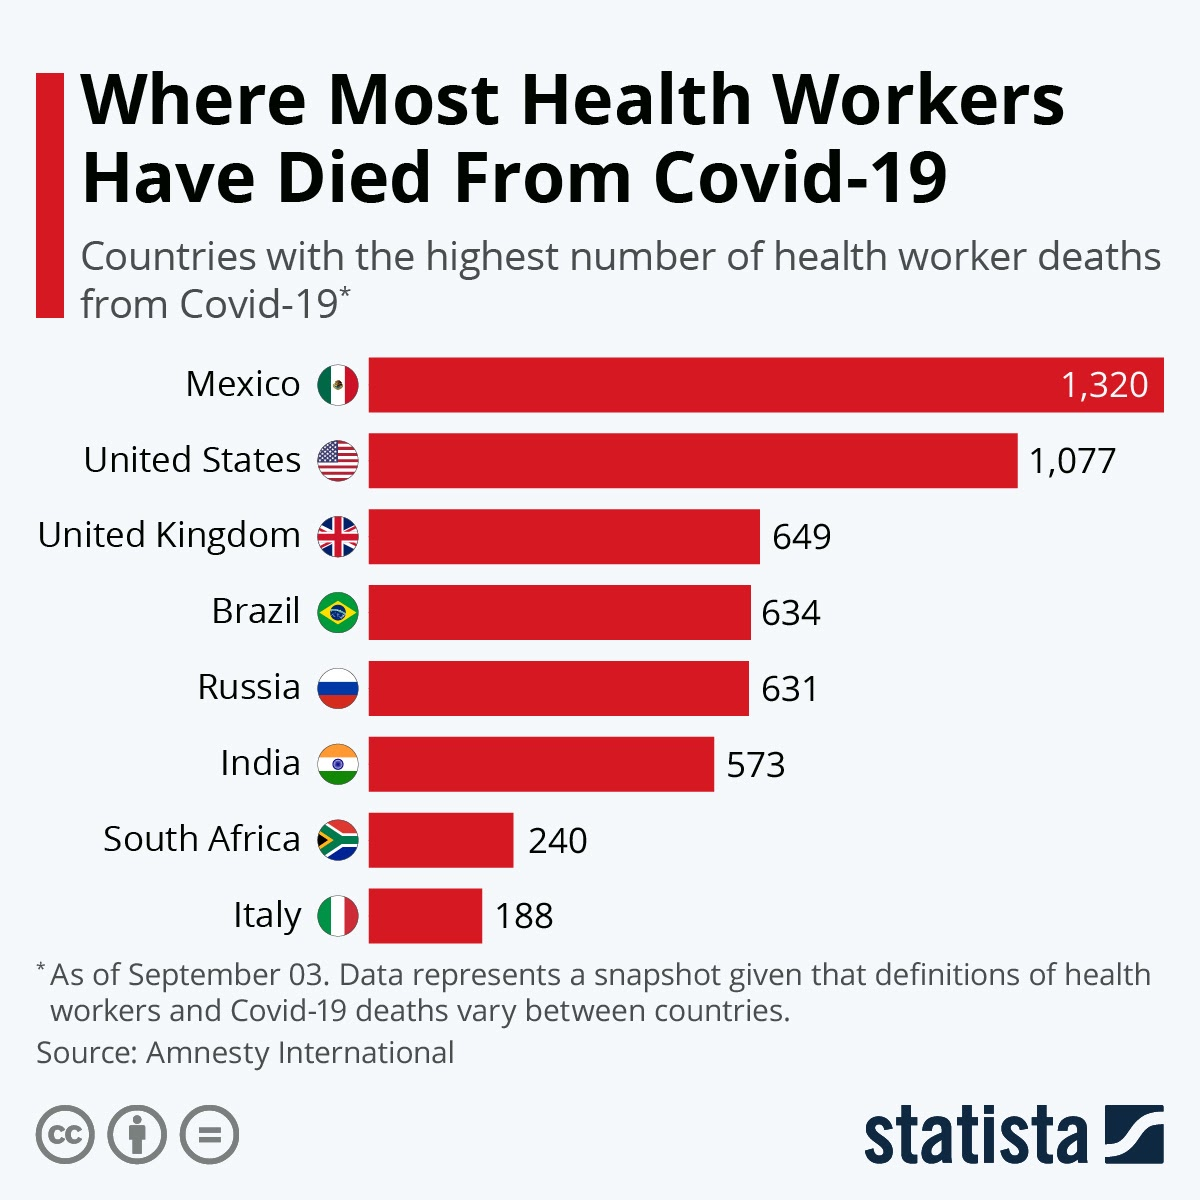 Where Most Health Workers Have Died From Covid-19 #infographic